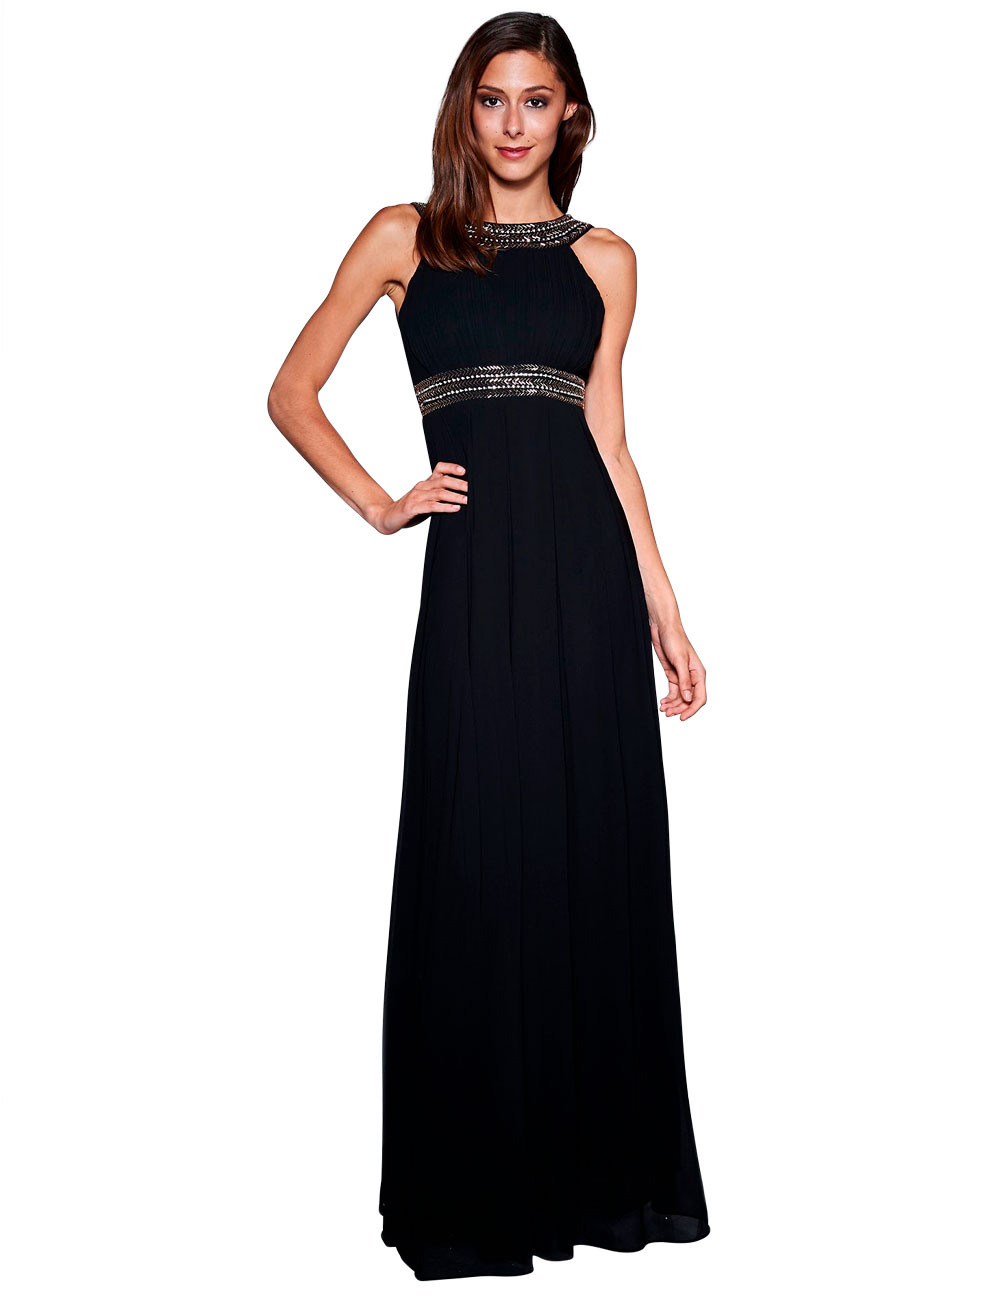 designer genial youtube abendkleid nähen stylish - abendkleid